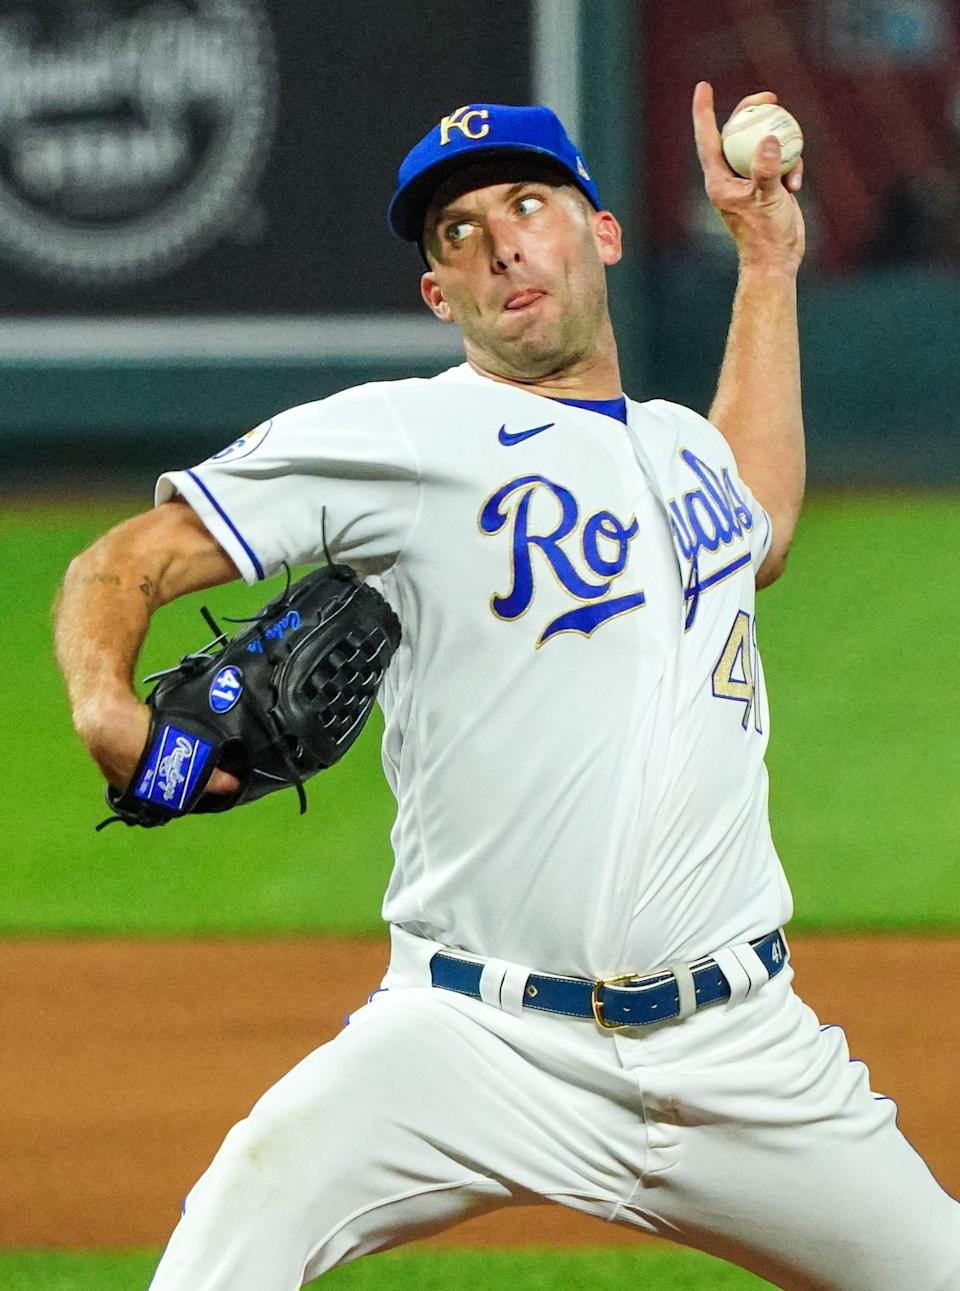 Kansas City Royals relief pitcher Danny Duffy pitches against the Detroit Tigers during the seventh inning Sept. 25, 2020, at Kauffman Stadium.